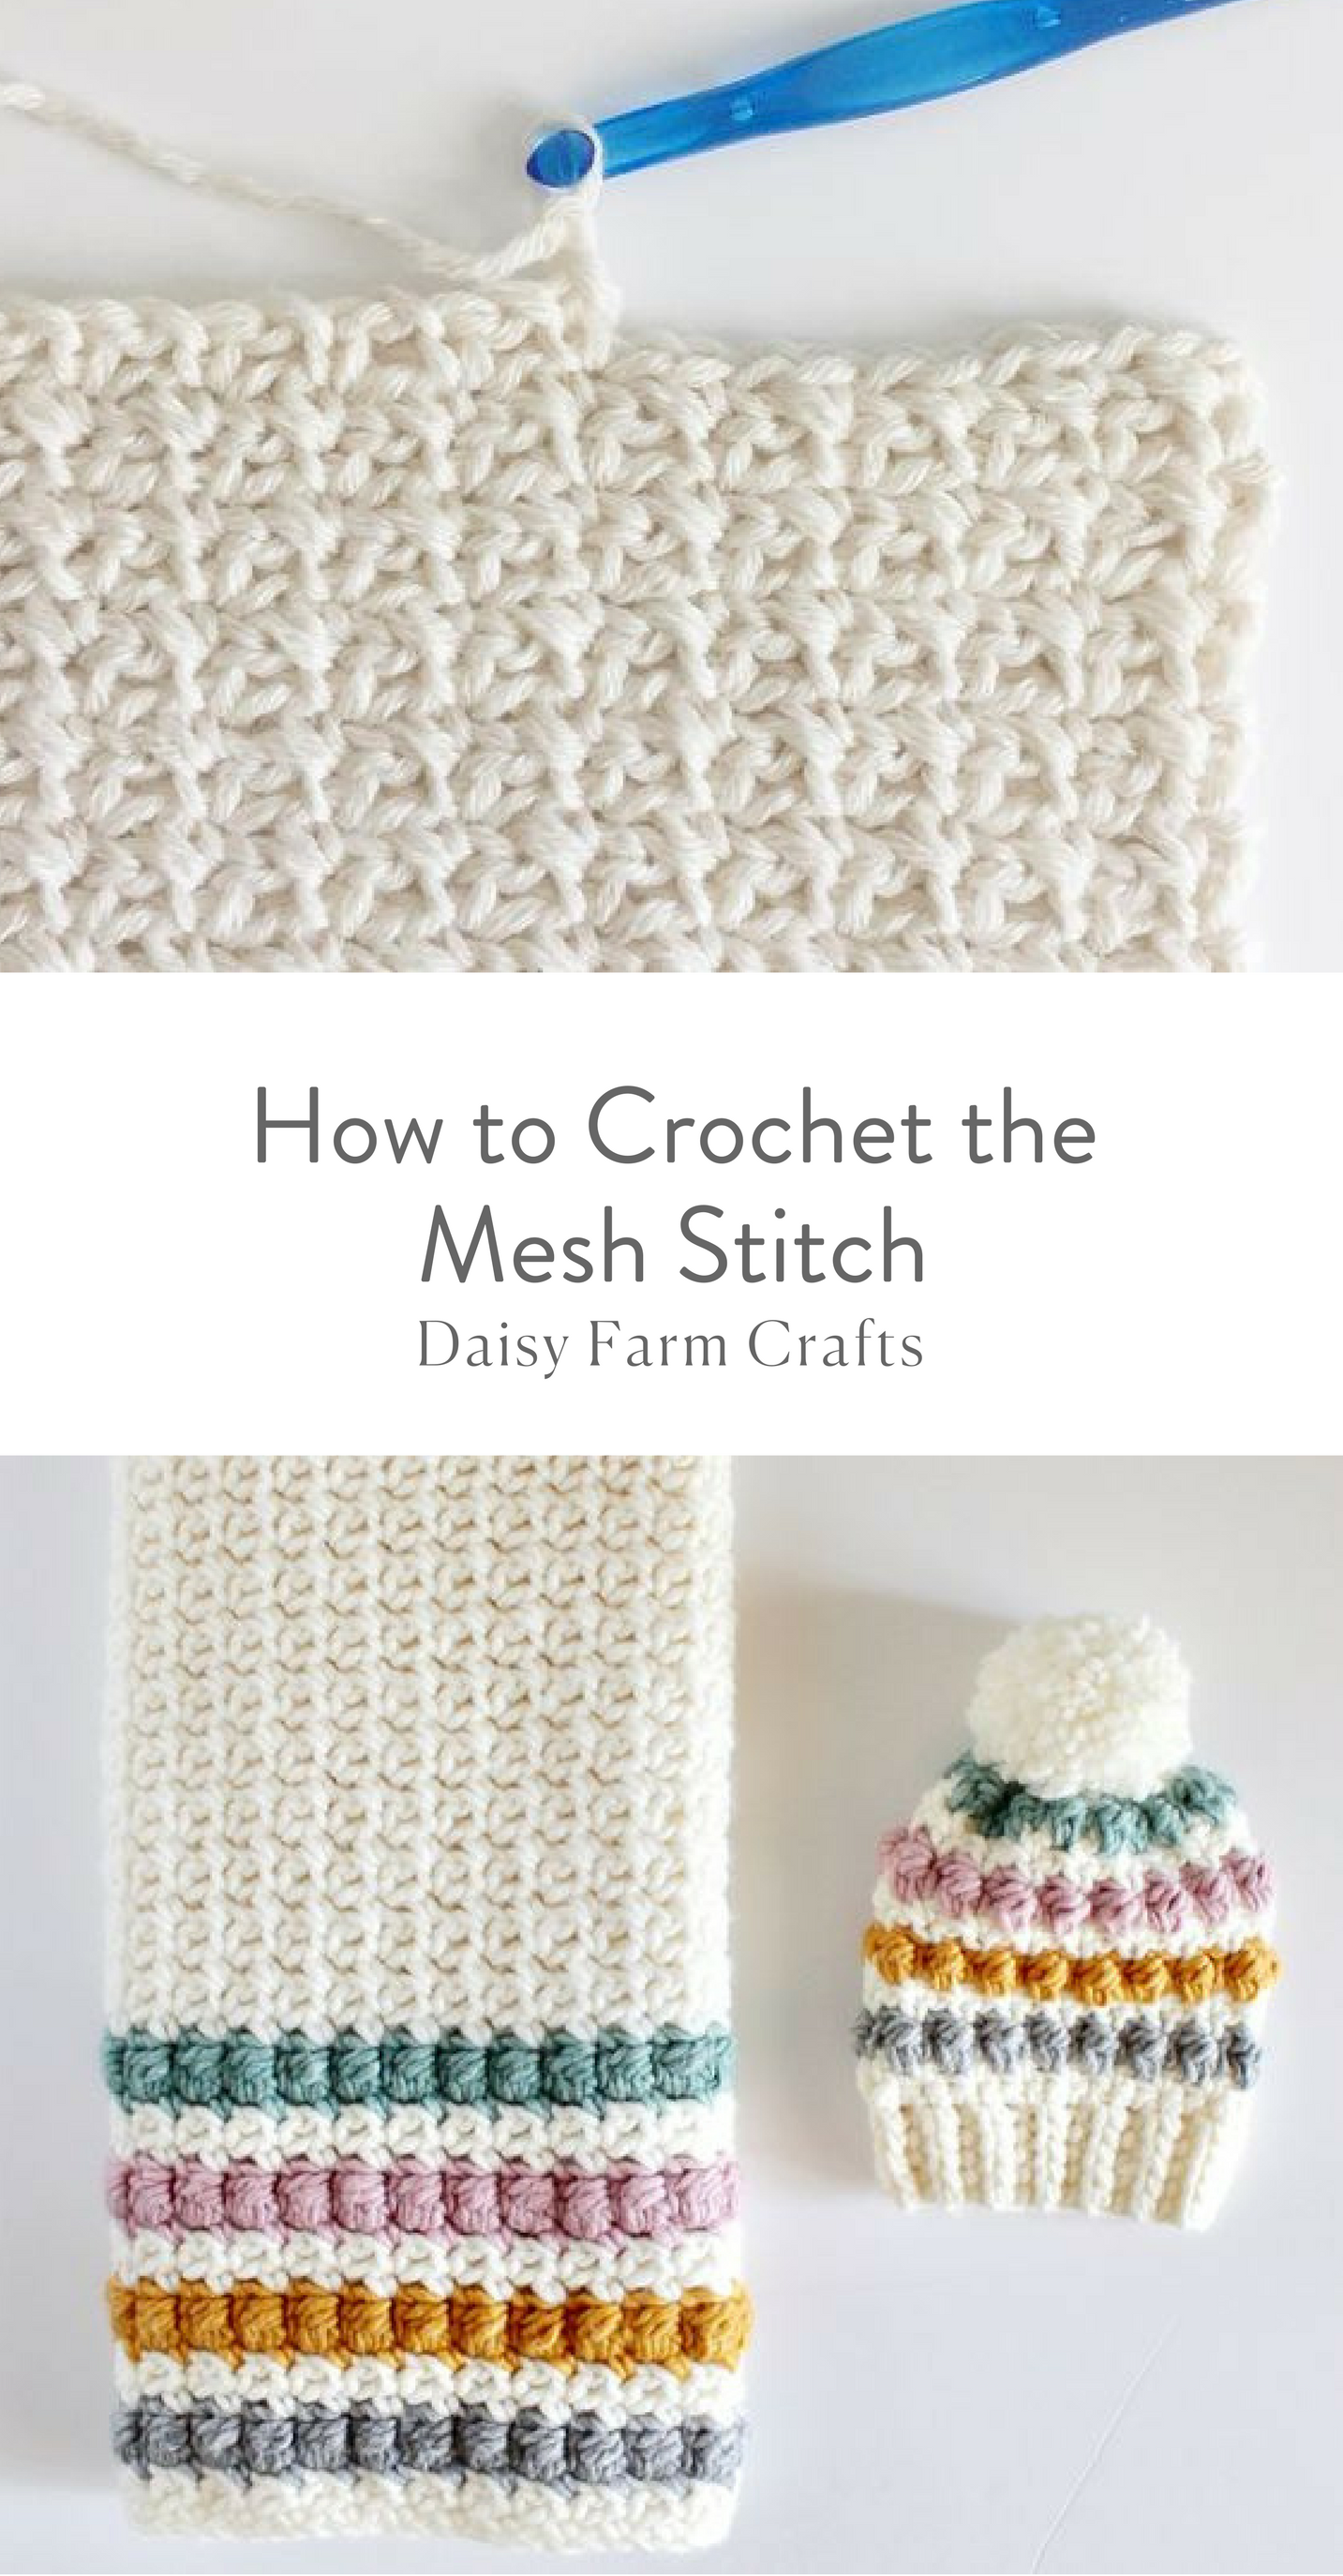 How to Crochet the Mesh Stitch #crochetstitchespatterns